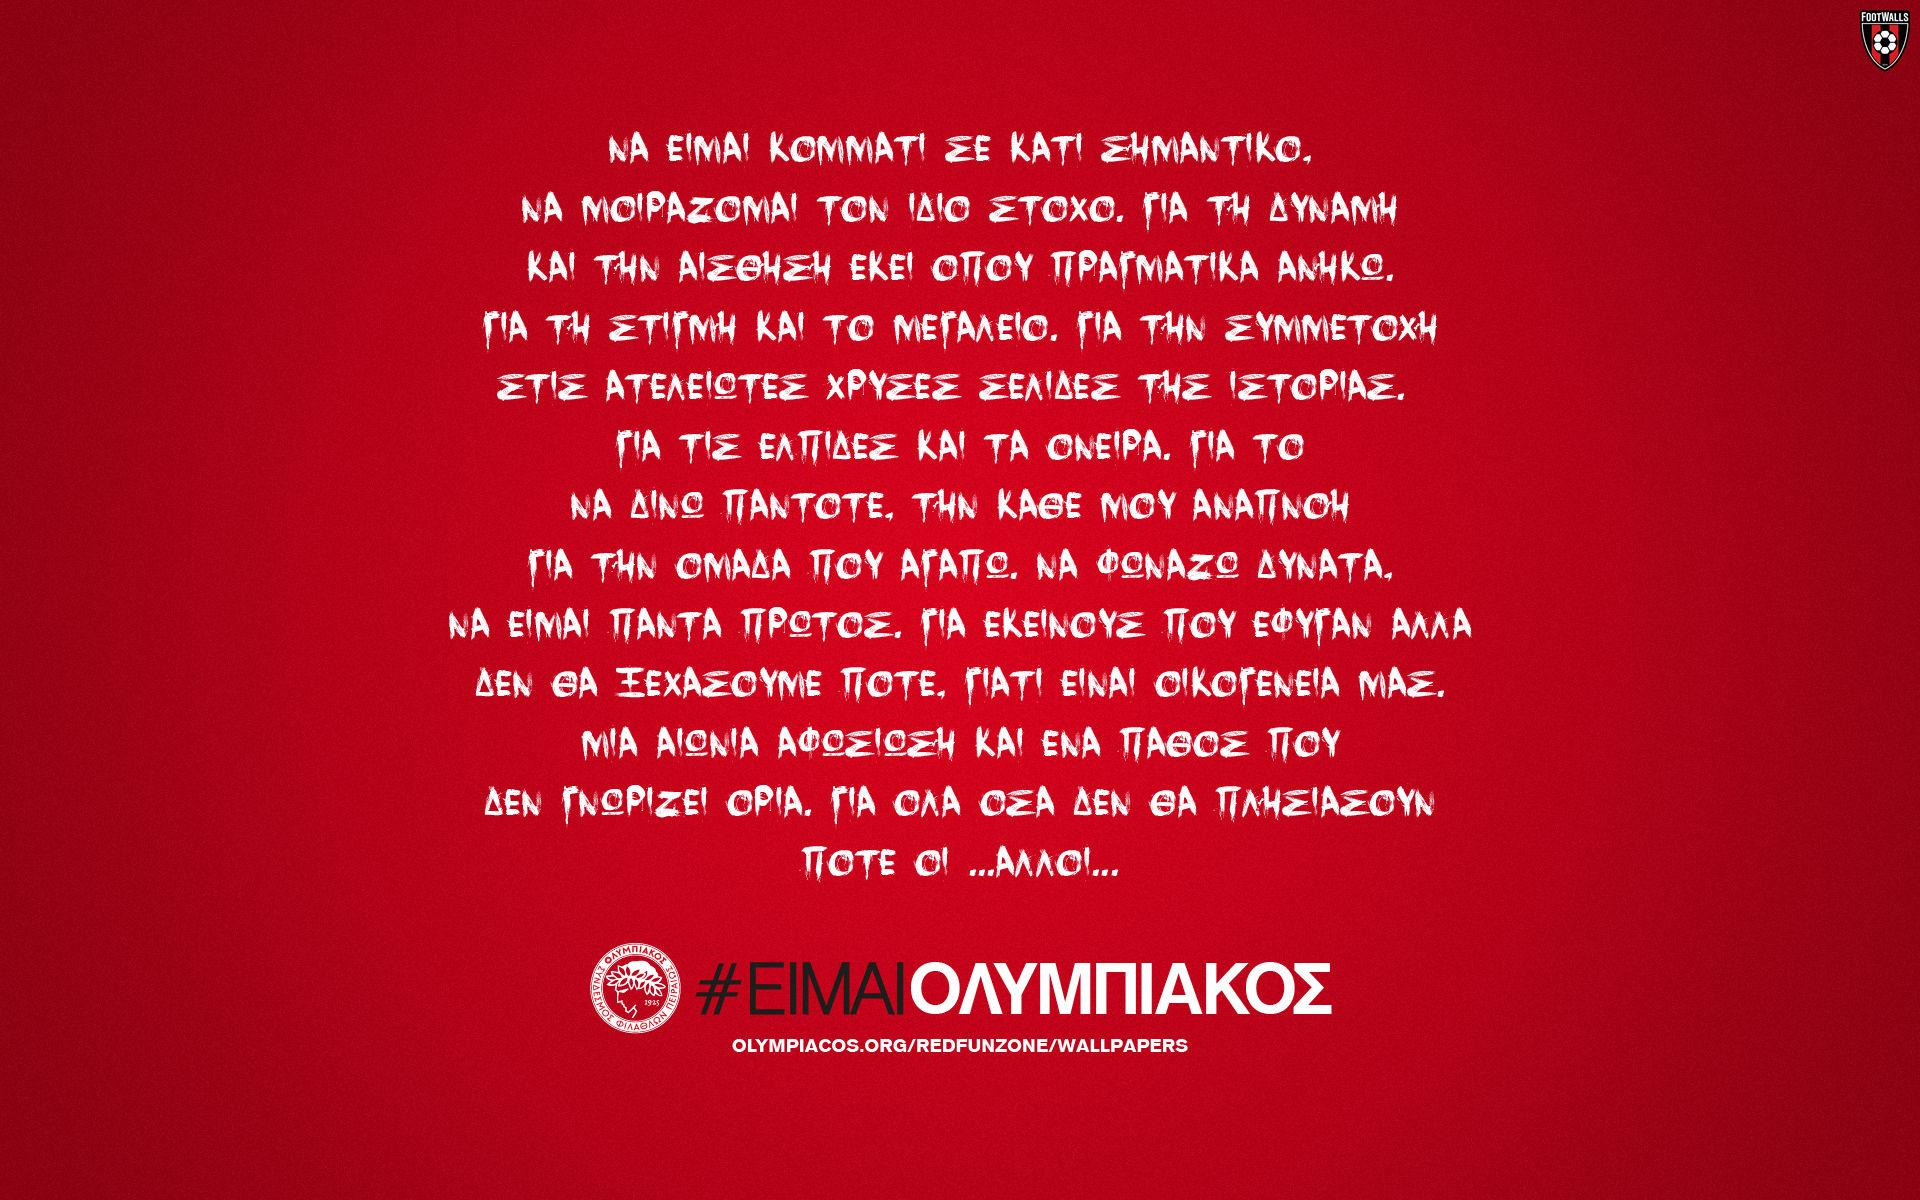 Olympiacos Wallpaper #16 - Football Wallpapers